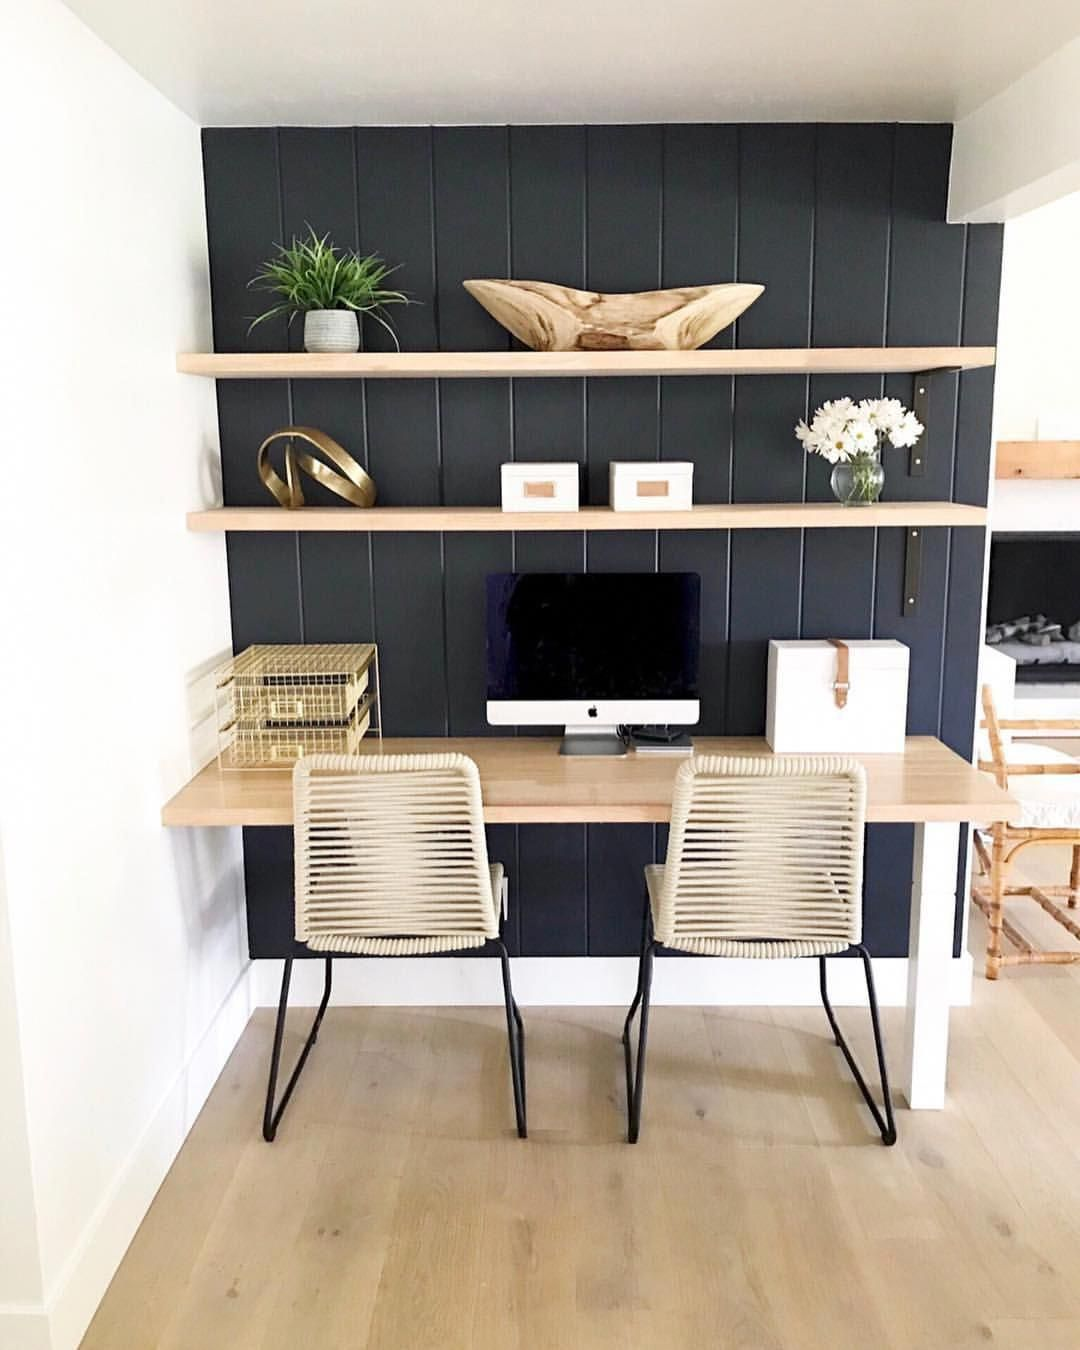 Small Home Office Ideas Small Work Office Decorating Ideas Office Room 20190221 Female Office Decor Home Office Design Home Office Decor